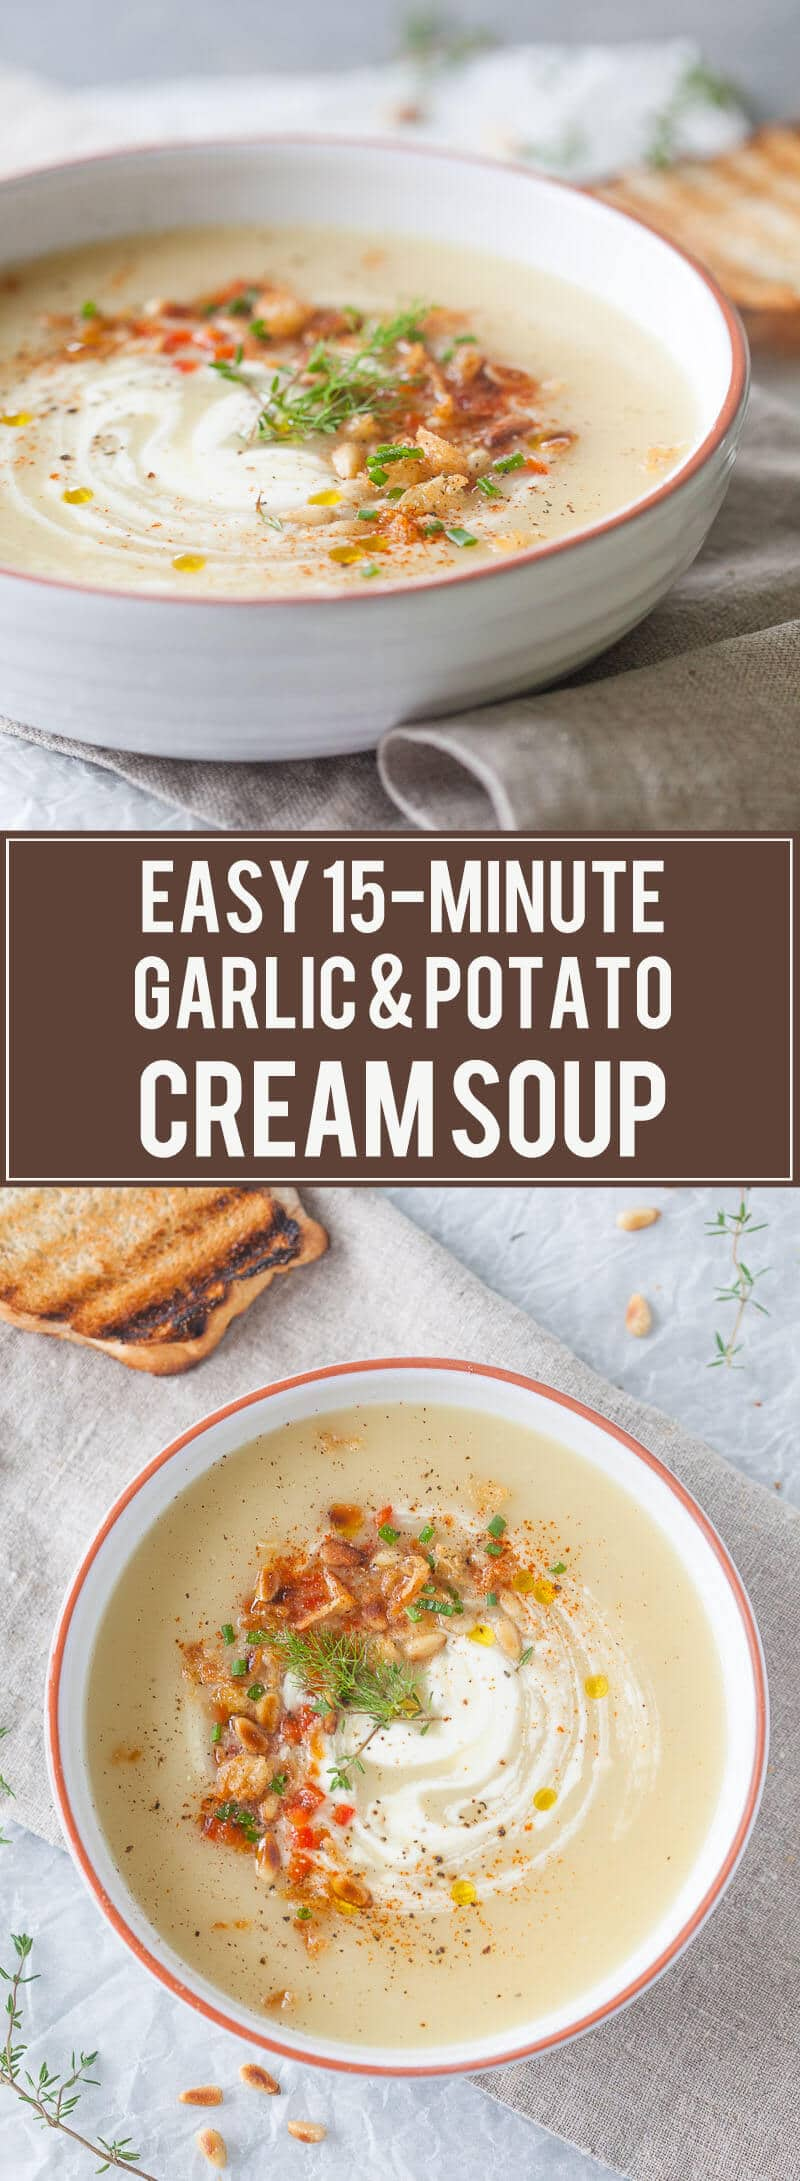 Cold days equal warm bowls of soup, such as this delicious & easy Garlic and Potato Cream Soup that you can make it just 15 minutes